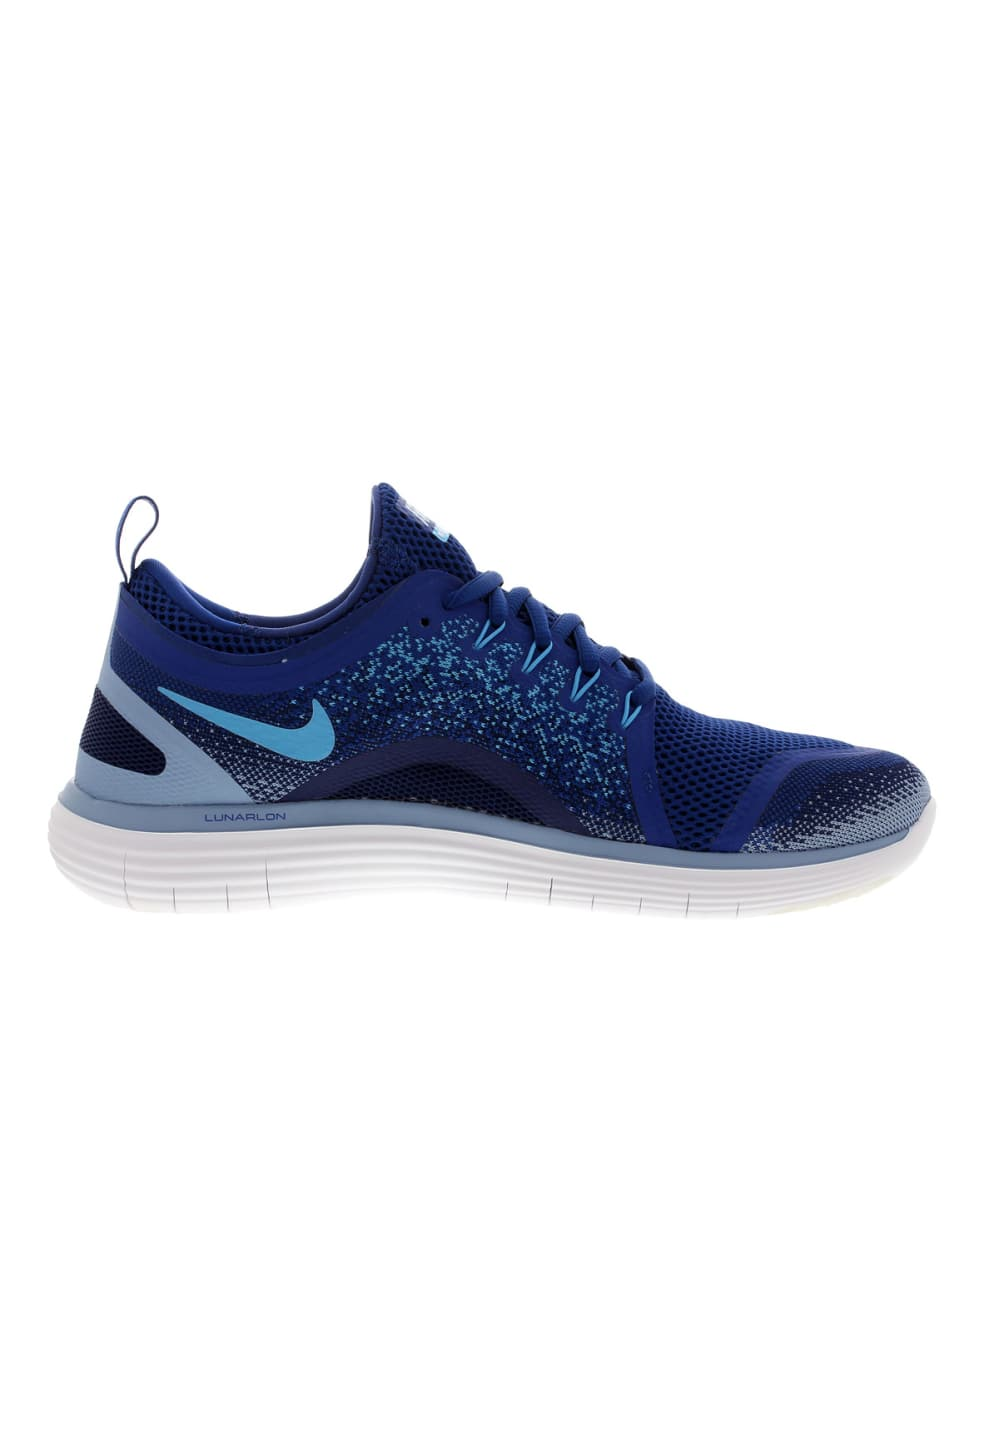 Nike Free RN Distance 2 Chaussures running pour Homme Bleu